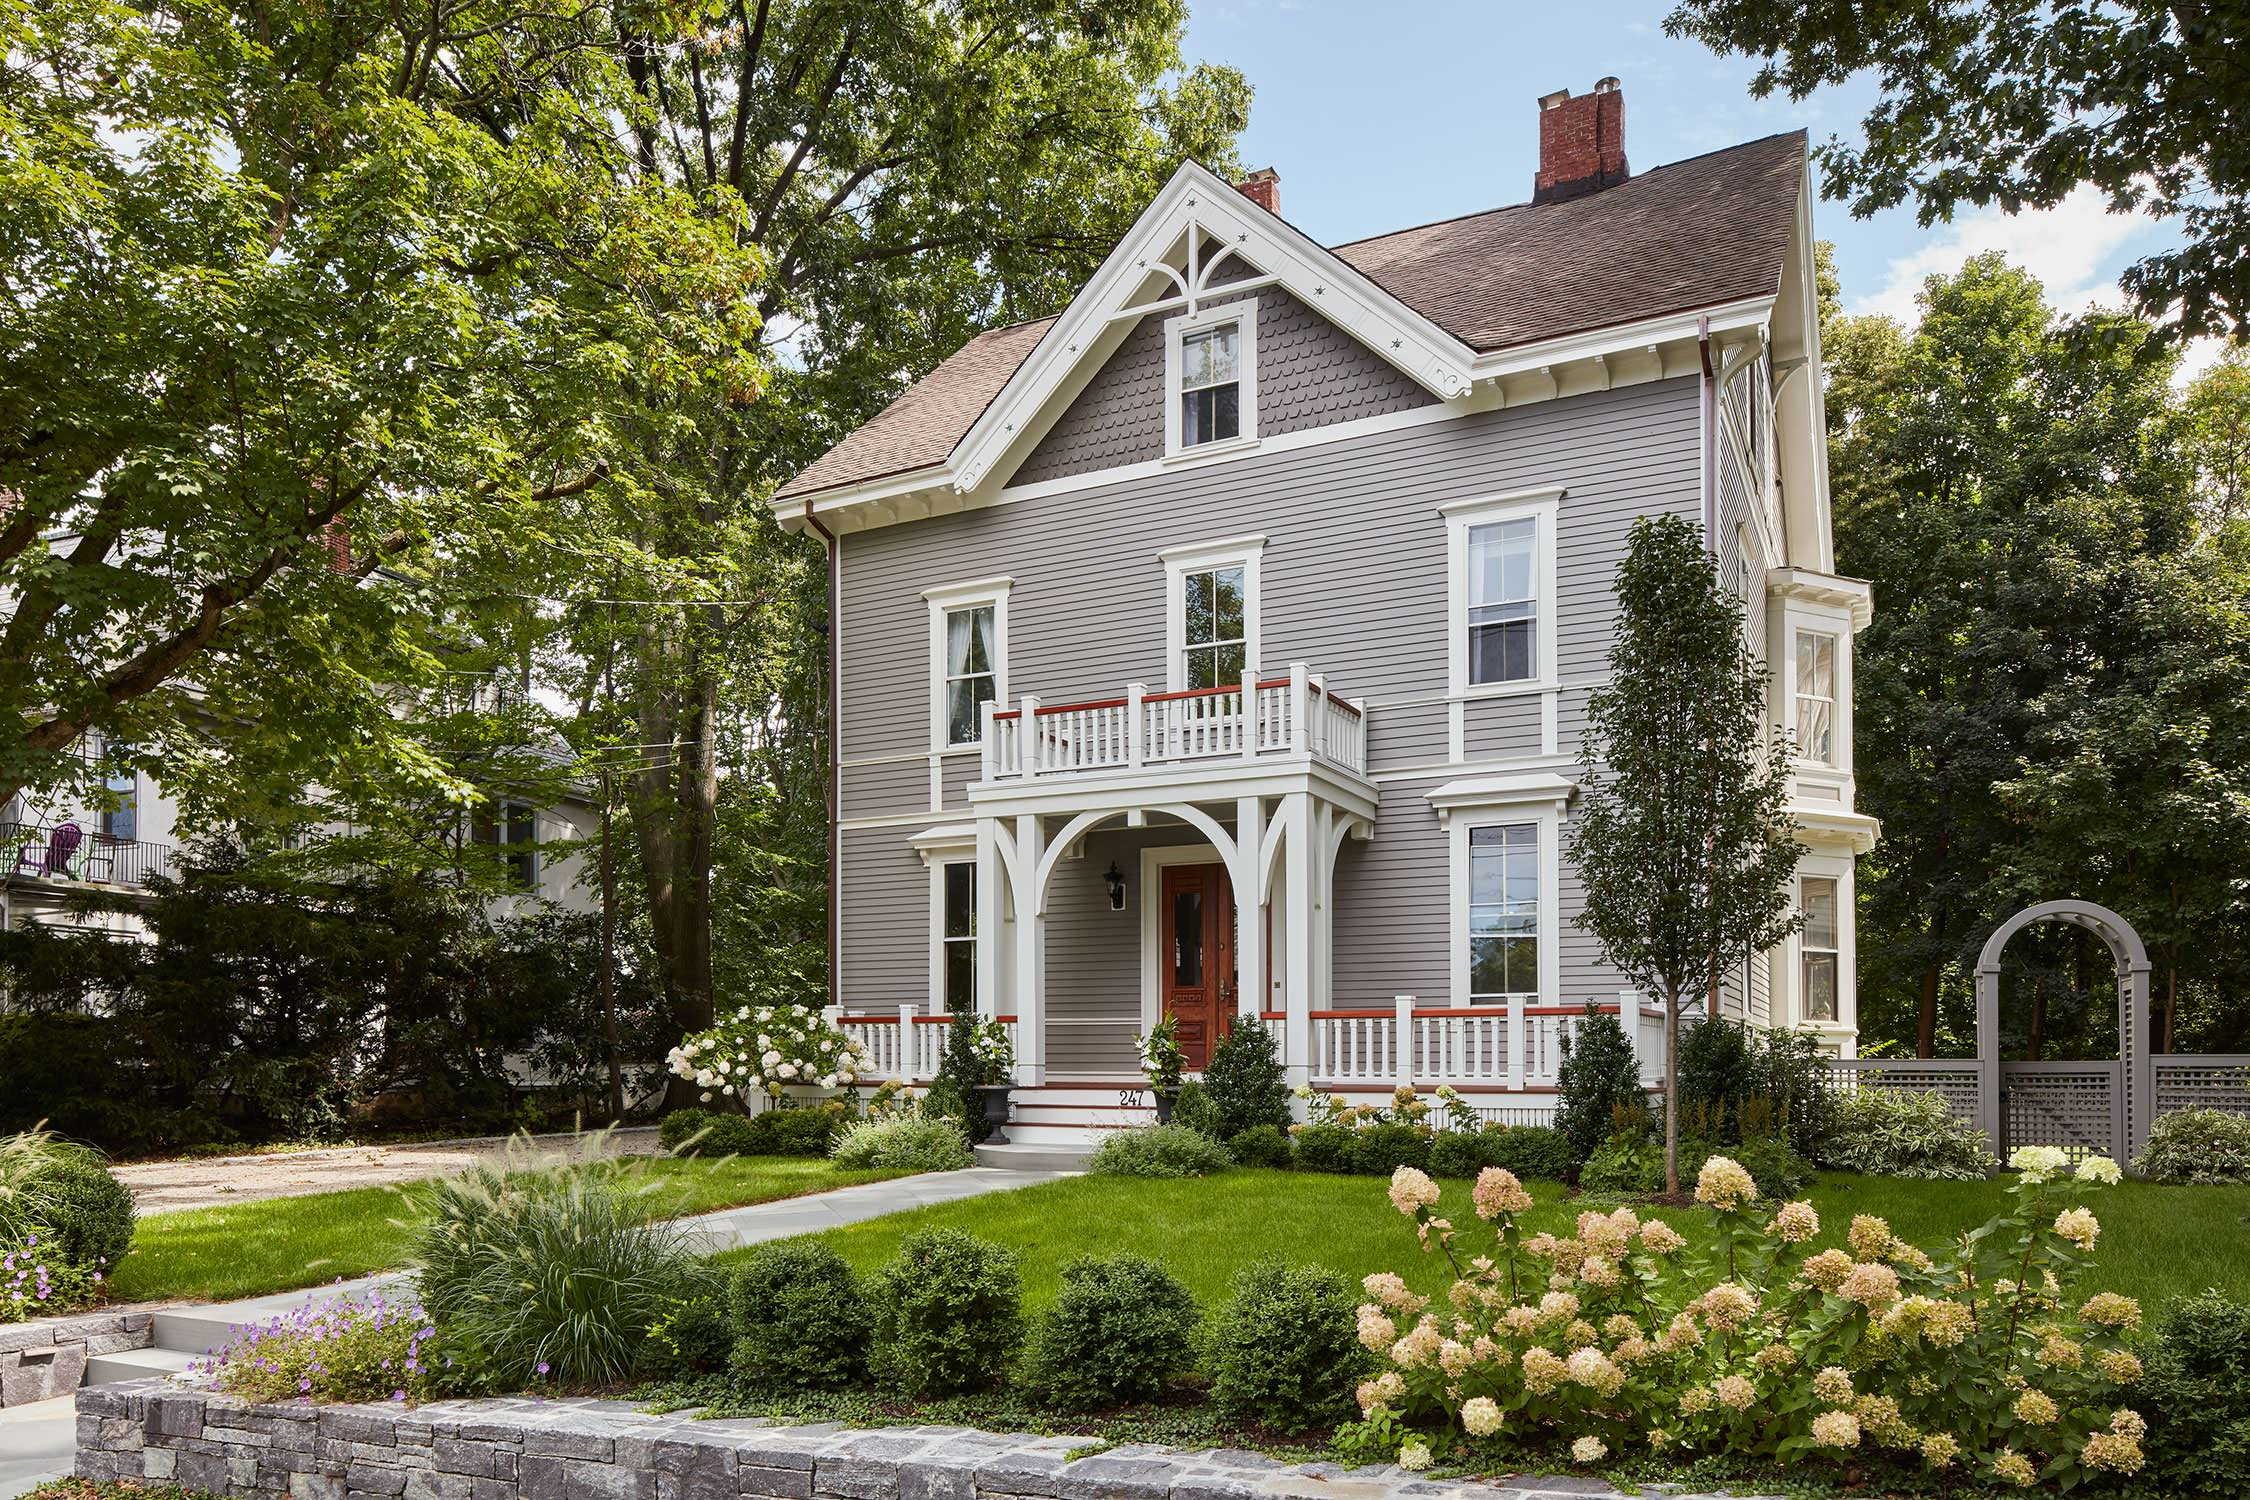 75 Beautiful Exterior Home Pictures Ideas January 2021 Houzz